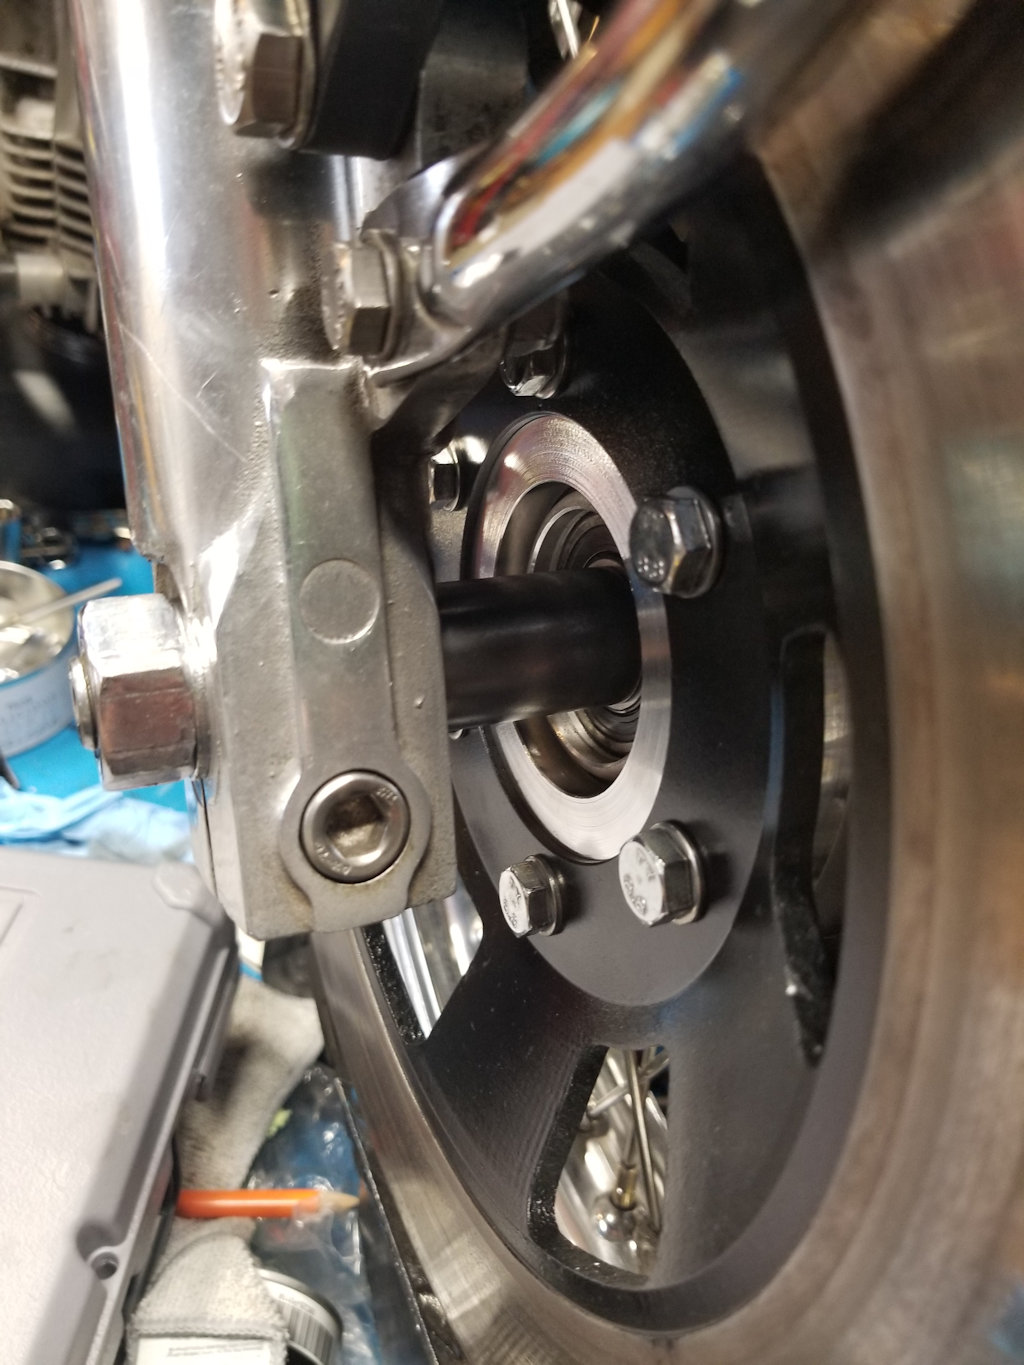 Disc brake spacer to add dual disc front brakes to Moto Guzzi V700, V7 Special, Ambassador, 850 GT, 850 GT California, Eldorado, and 850 California Police models.